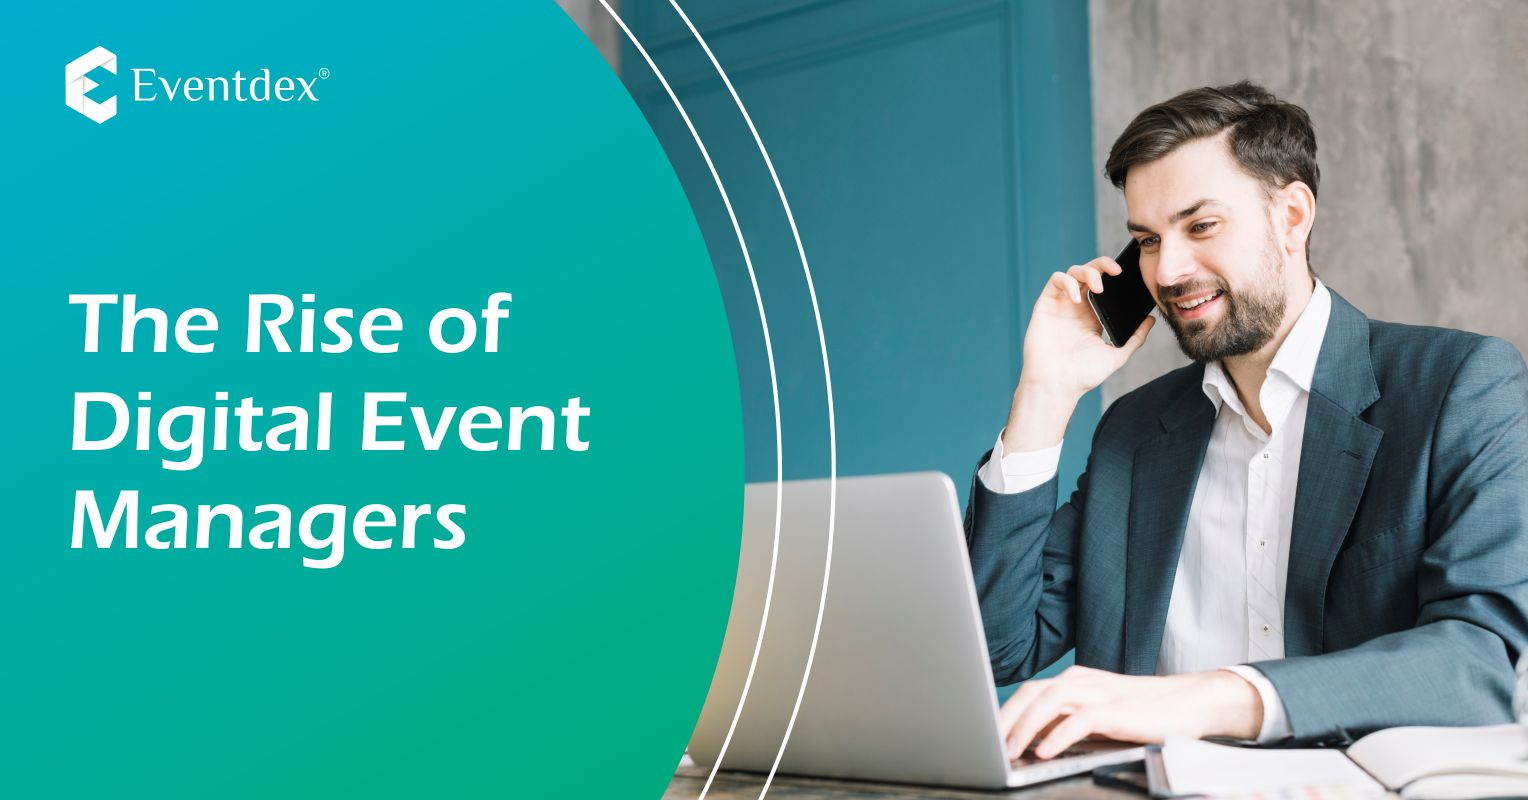 The Rise of Digital Event Managers - Eventdex